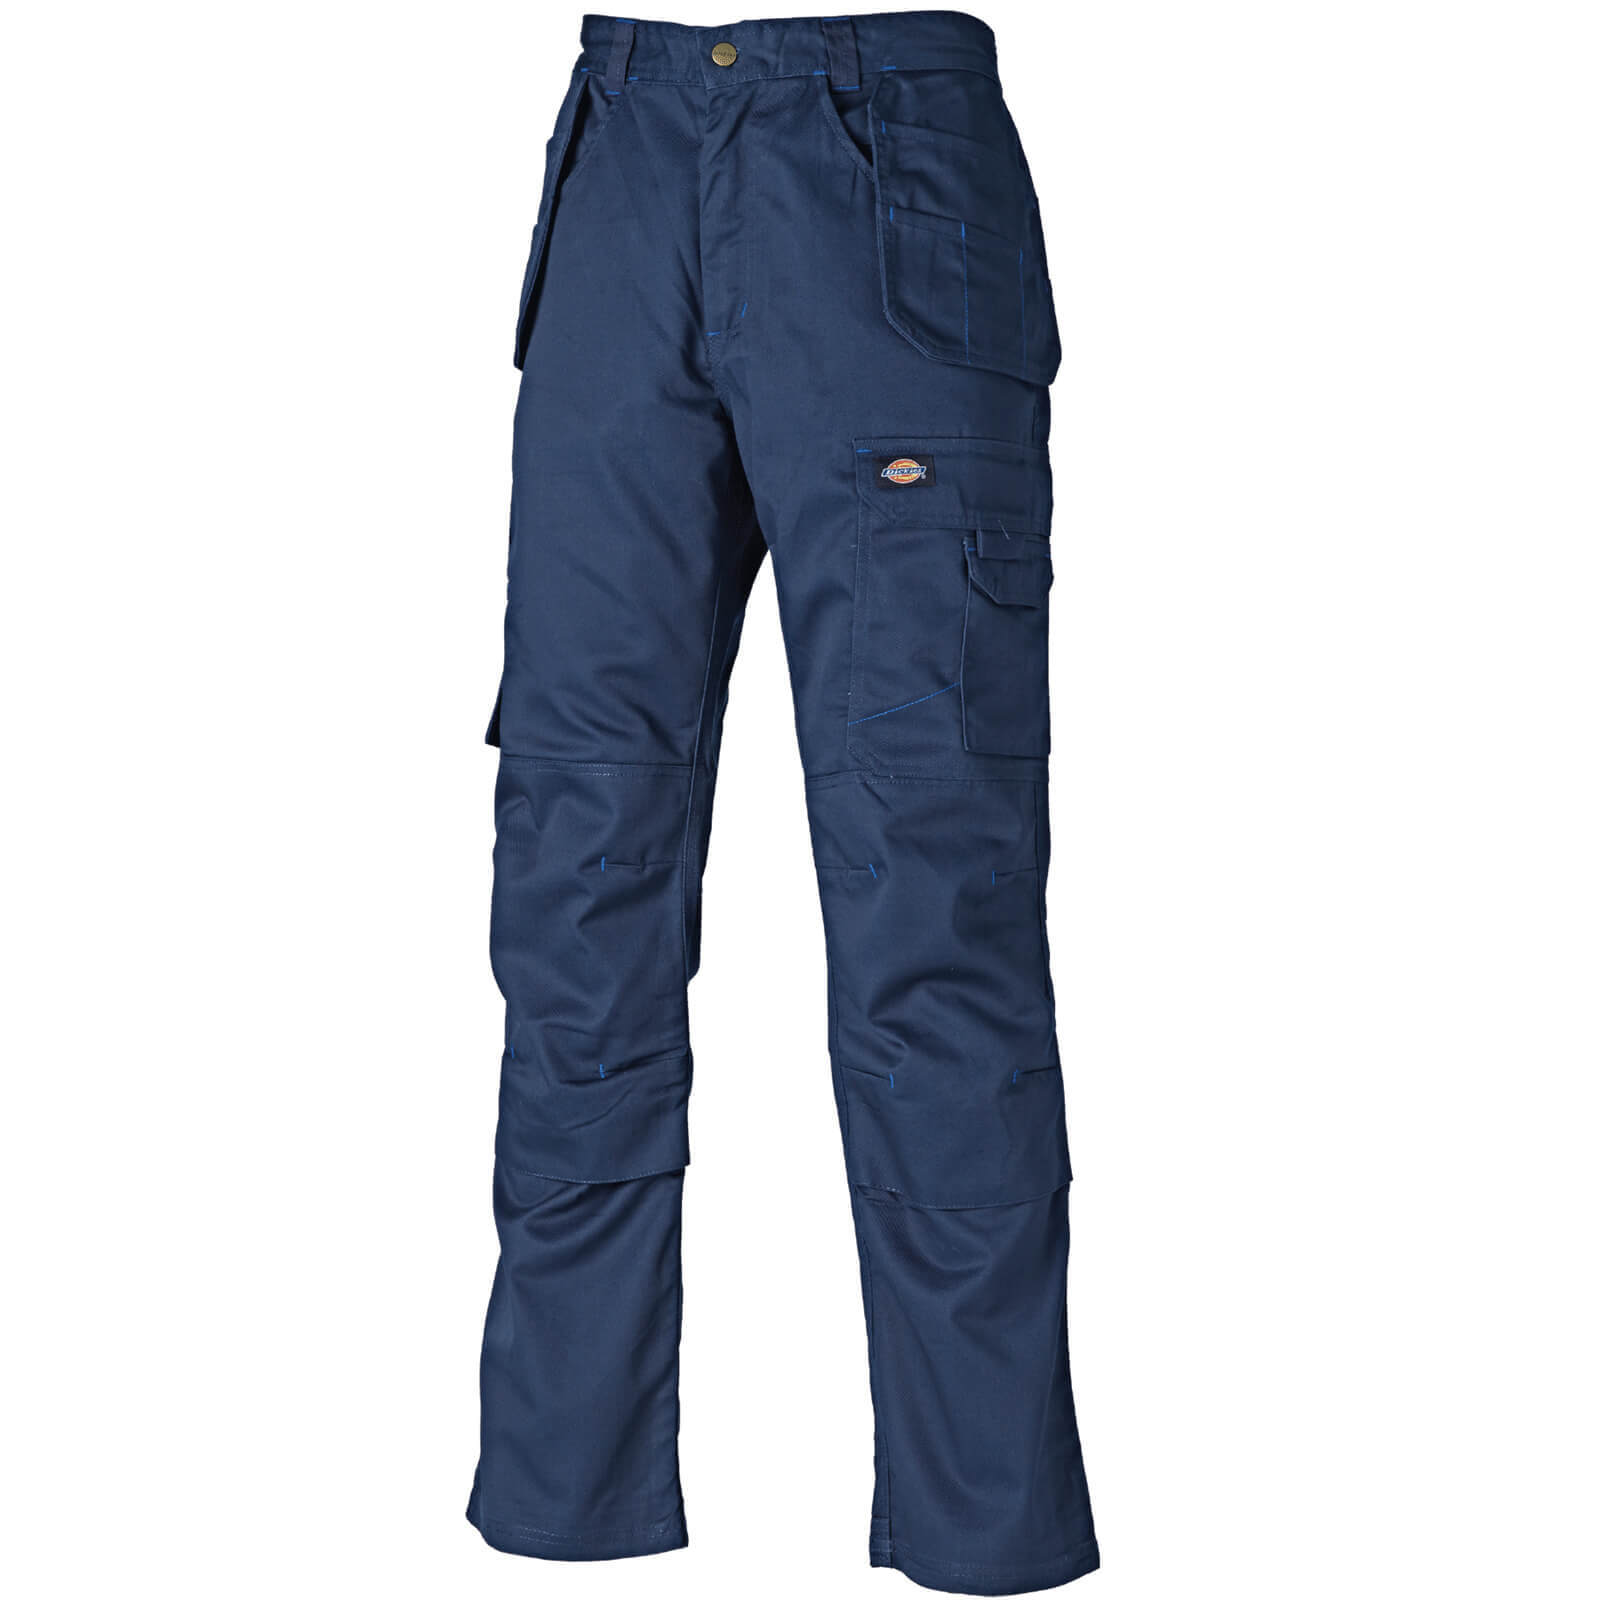 Photo of Dickies mens redhawk pro trousers navy blue 30